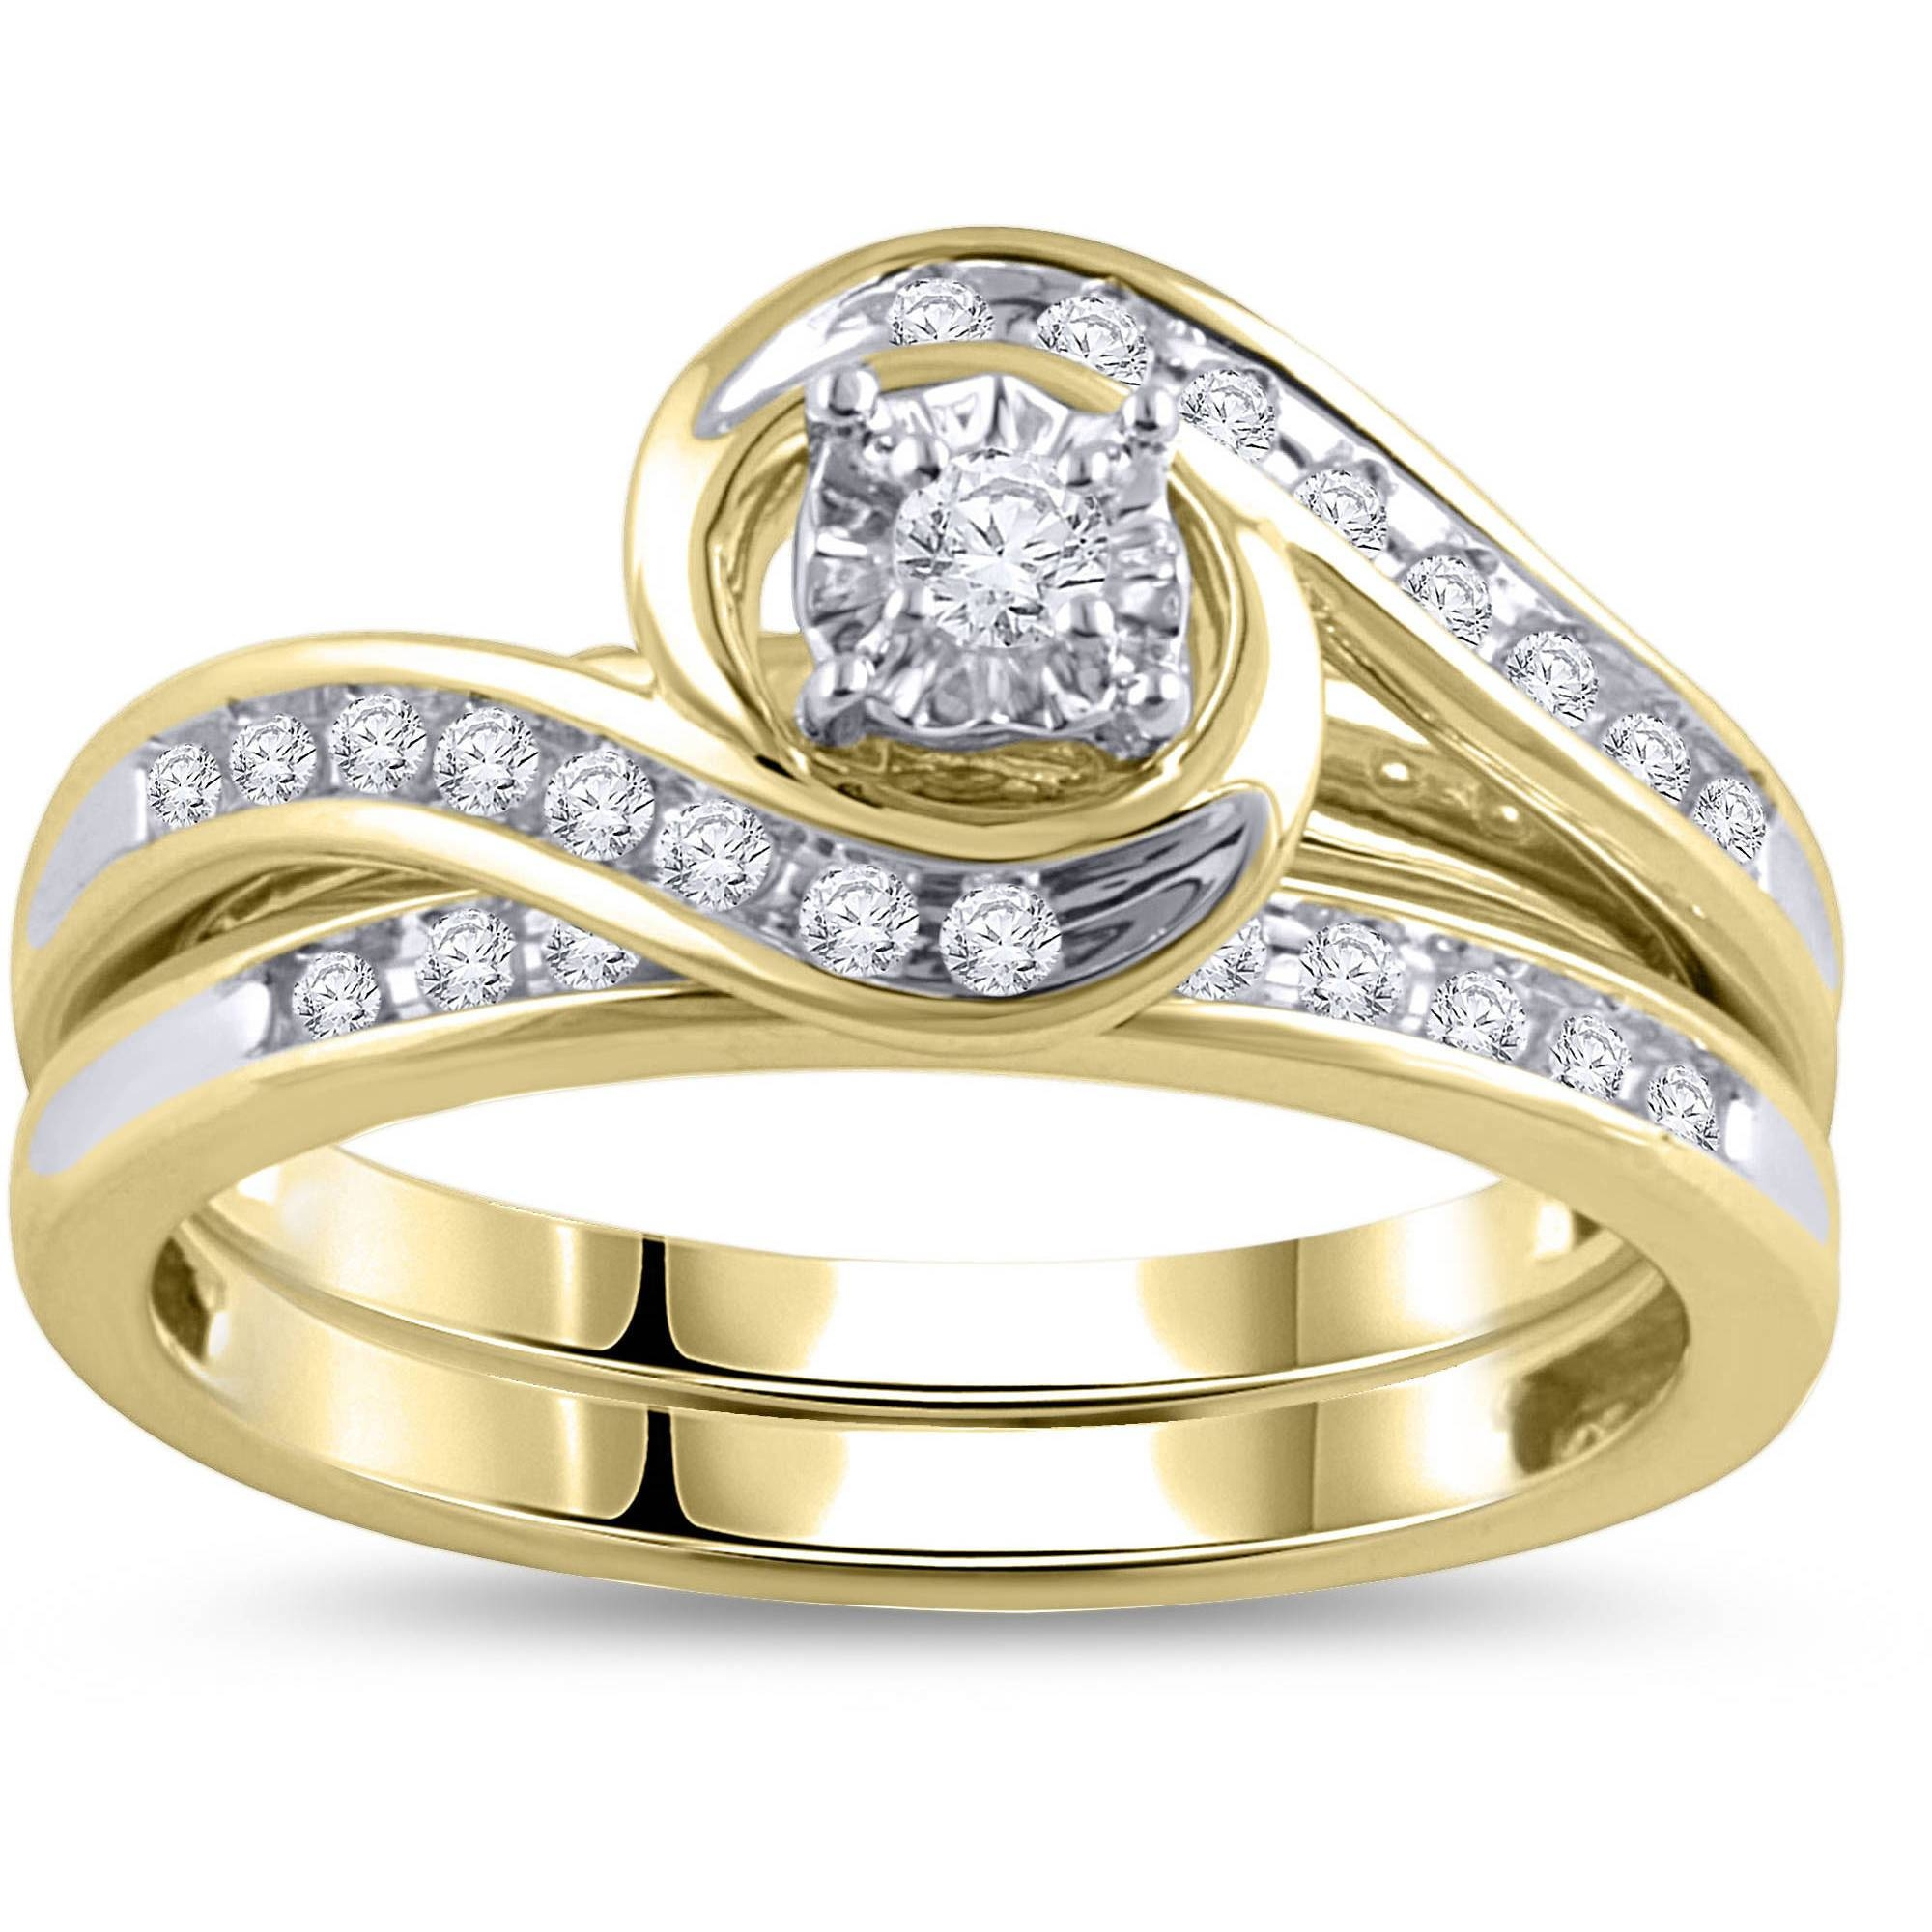 1/3 Carat Diamond Yellow Gold Bypass Bridal Ring Set – Walmart Within Wedding And Engagement Ring Sets (View 11 of 15)